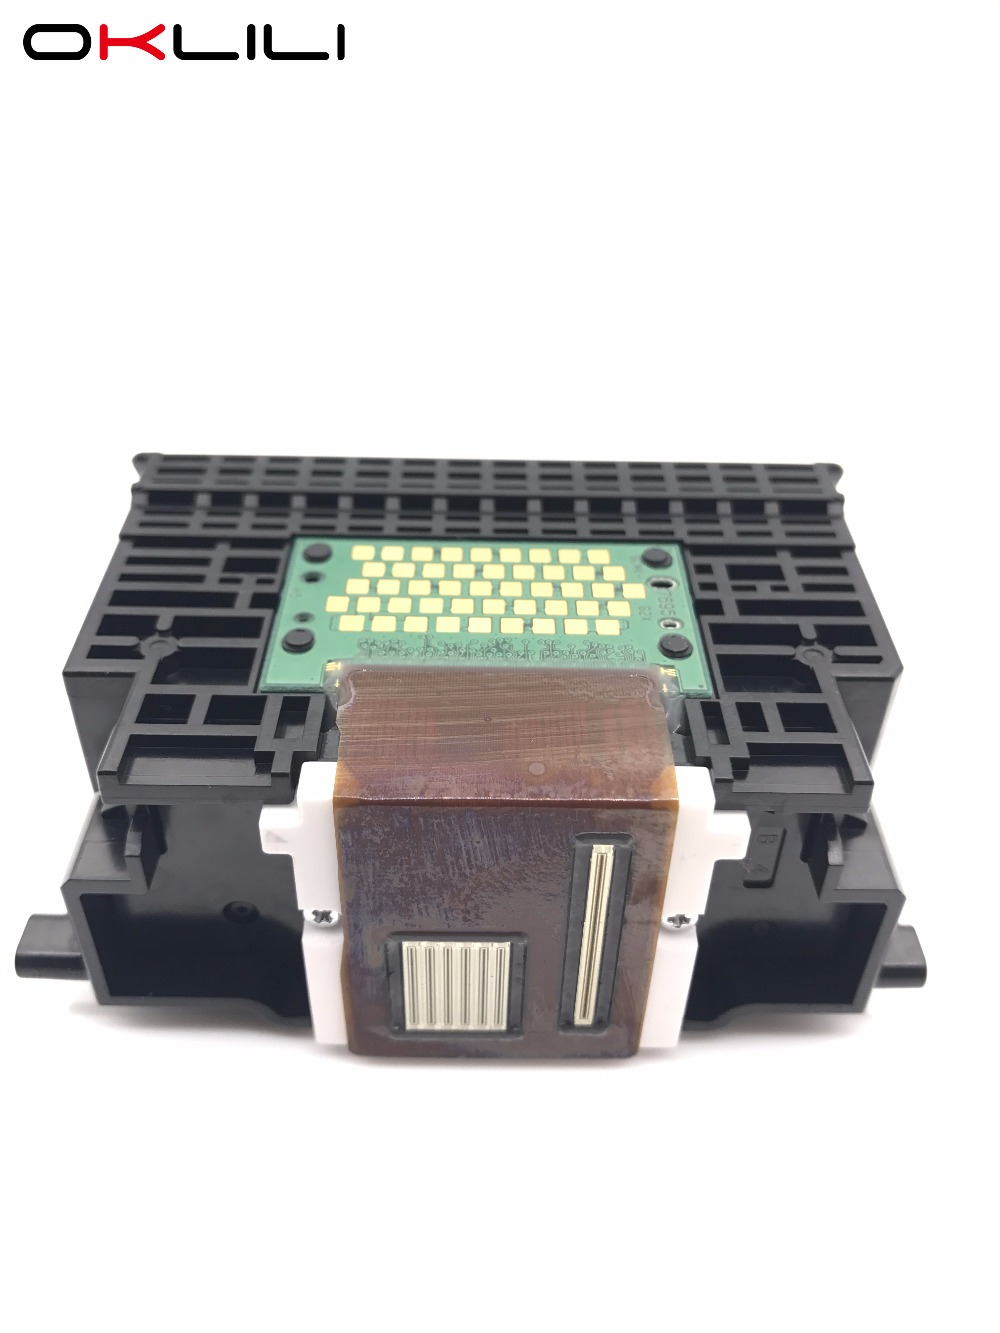 OKLILI ORIGINAL QY6-0075 QY6-0075-000 Printhead Print Head Printer Head for Canon iP5300 MP810 iP4500 MP610 MX850 genuine brand new qy6 0083 printhead print head for canon mg6310 mg6320 mg6350 mg6380 mg7120 mg7140 mg7150 mg7180 ip8720 ip8750